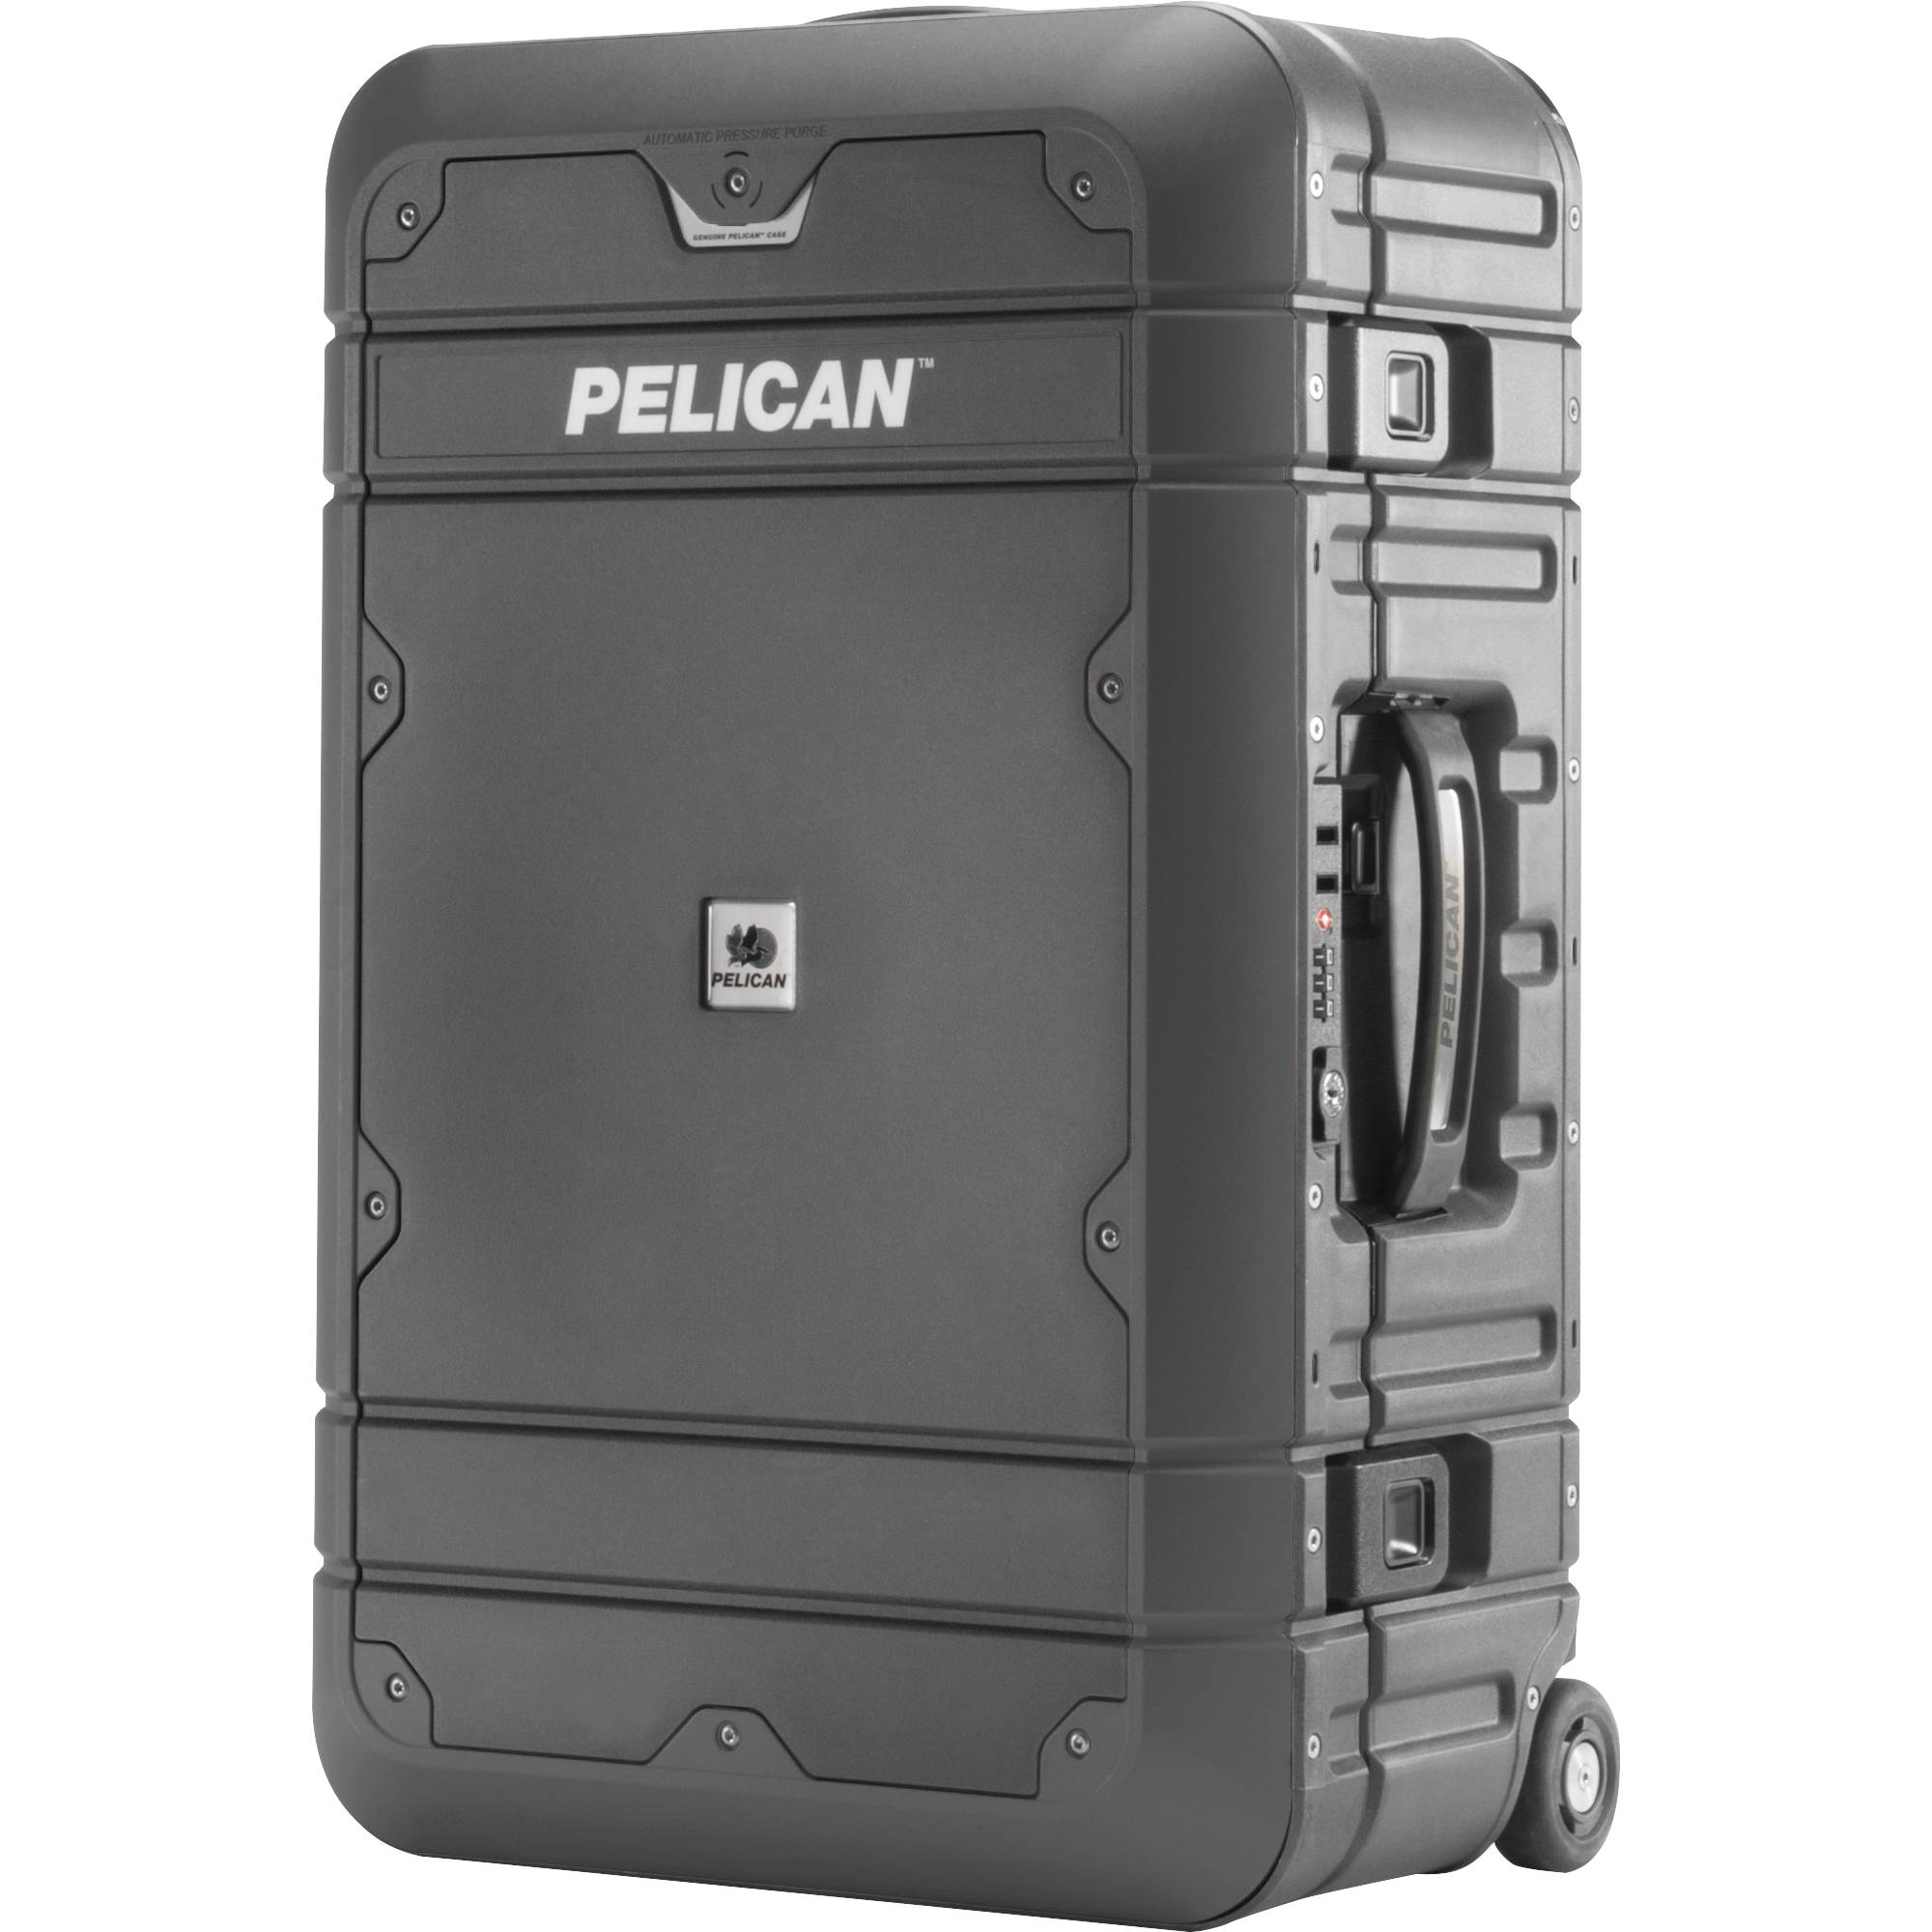 Pelican BA22 Elite Carry-On Luggage LG-BA22-GRYBLK B&H Photo